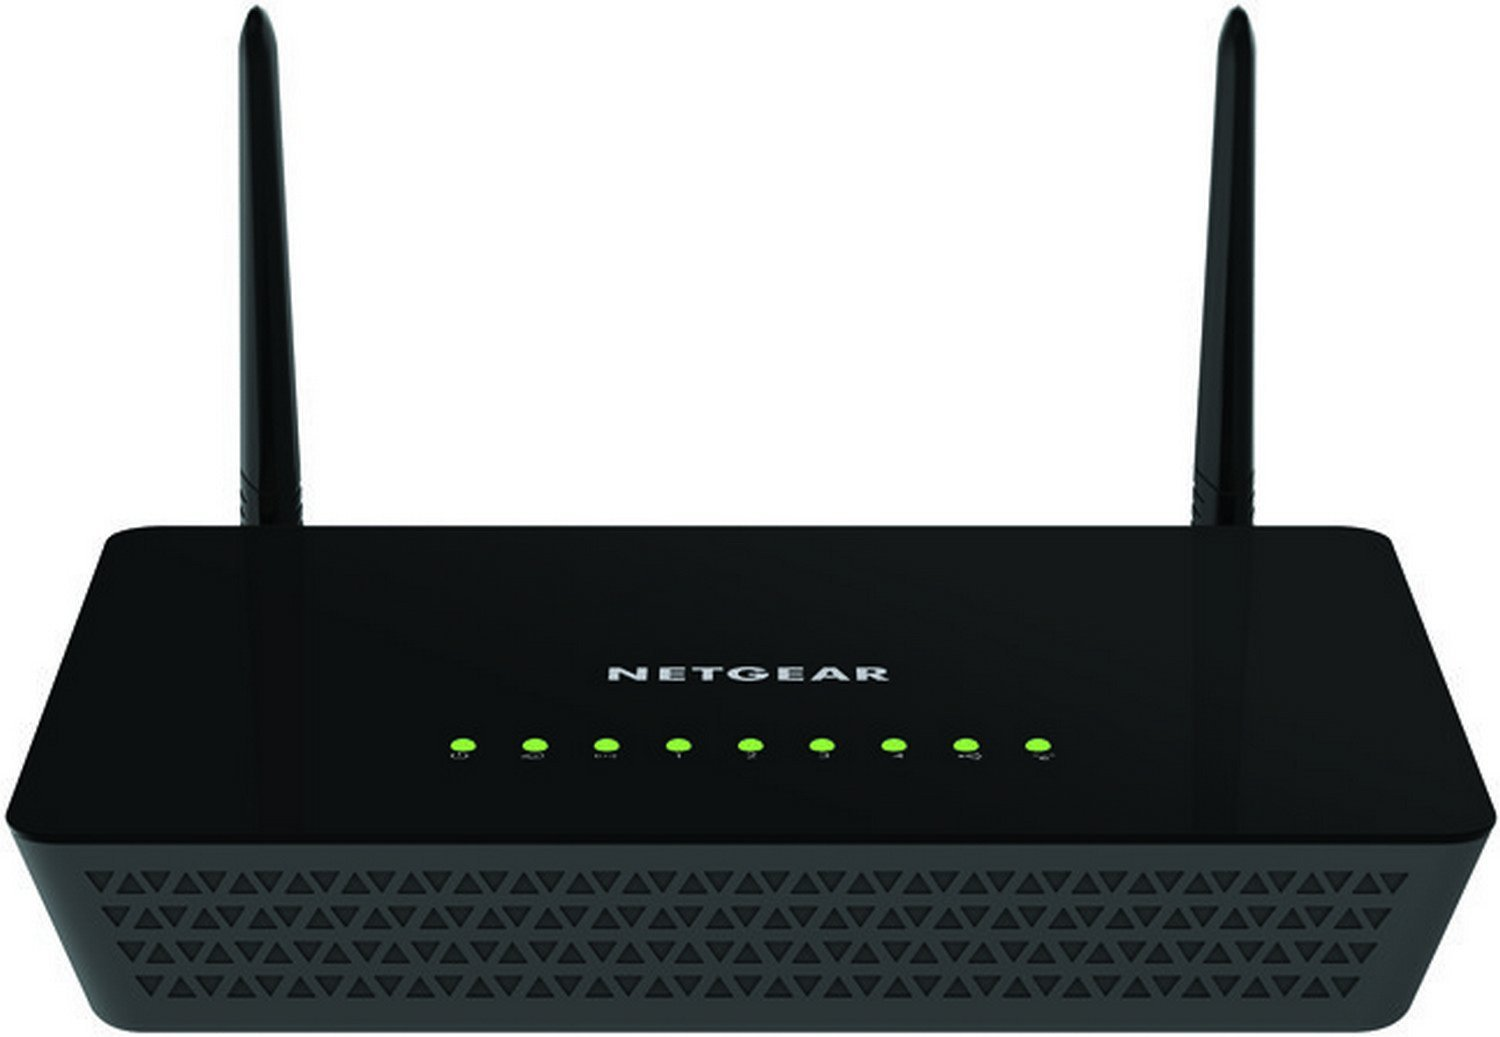 Netgear R6220 AC-1200 Smart WiFi Router with External Antennas